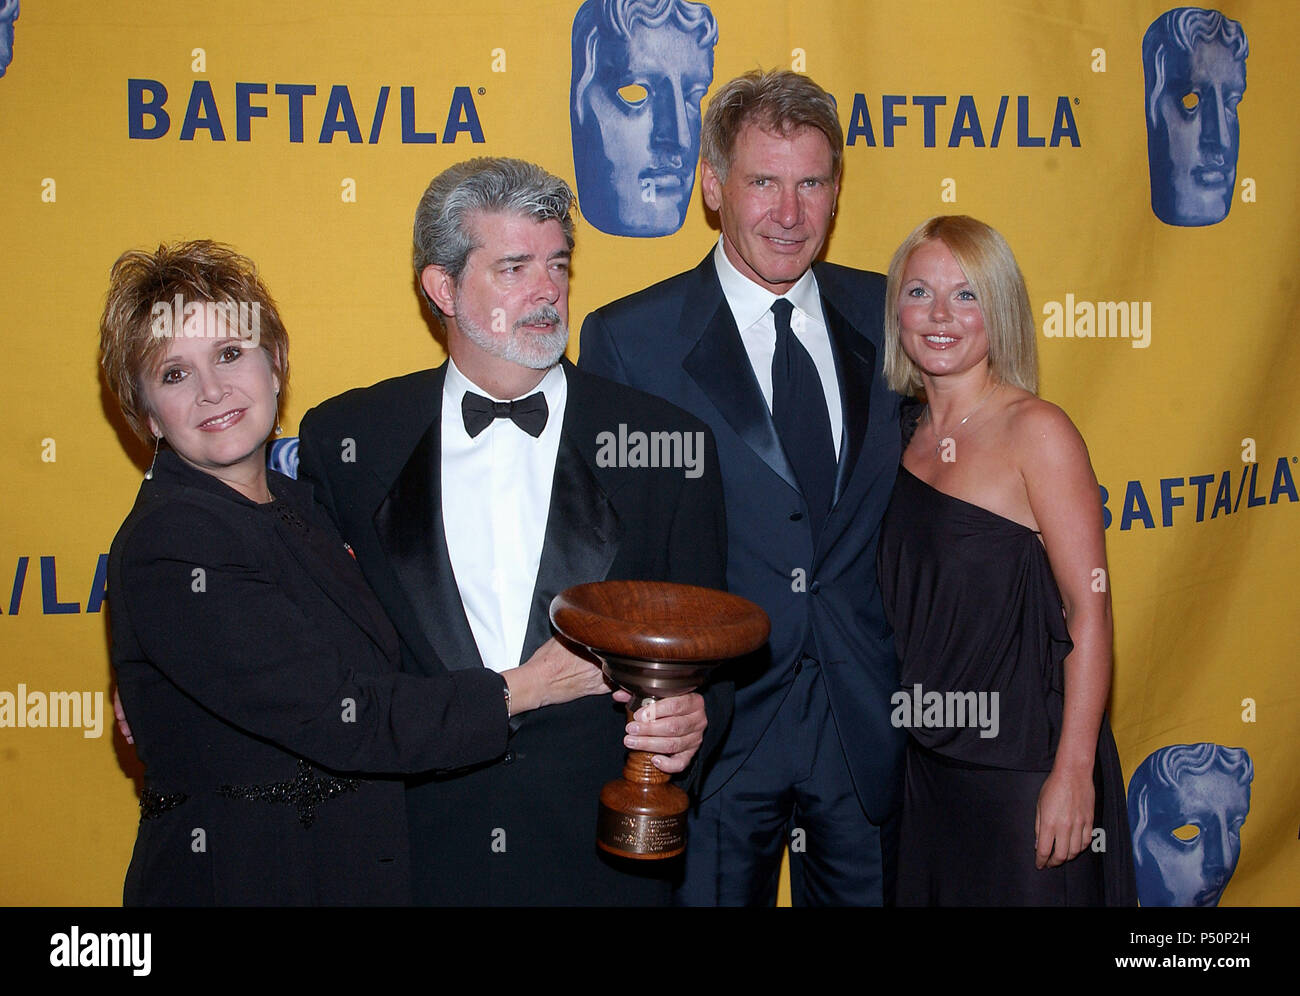 Carrie Fisher, Harrison Ford and the performer Geri Halliwell at The 11th Annual BAFTA-LA -Britannia Awards presented to George Lucas at the Beverly Hilton in Los Angeles. April 12,  2002.             -            FisherLucasFordHalliwell10.jpgFisherLucasFordHalliwell10  Event in Hollywood Life - California, Red Carpet Event, USA, Film Industry, Celebrities, Photography, Bestof, Arts Culture and Entertainment, Topix Celebrities fashion, Best of, Hollywood Life, Event in Hollywood Life - California,  backstage trophy, Awards show, movie celebrities, TV celebrities, Music celebrities, Topix, Bes - Stock Image